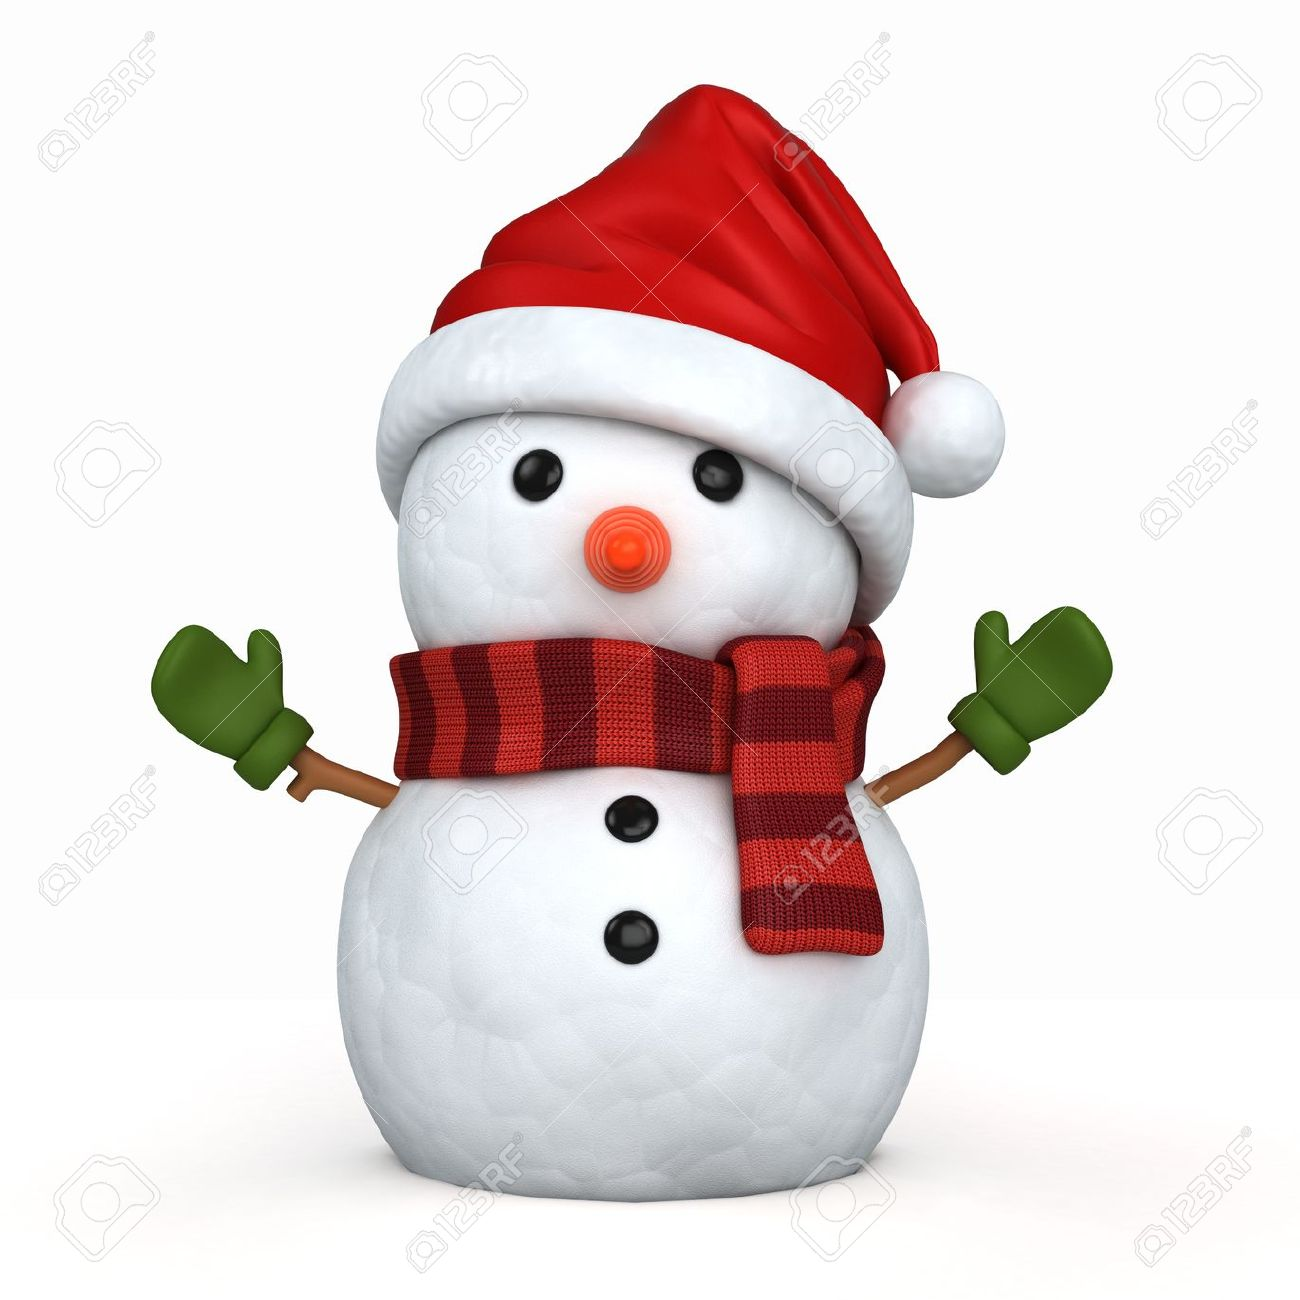 Weihnachtsbilder 3d.3d Render Of A Snowman Wearing Santa Hat And Gloves